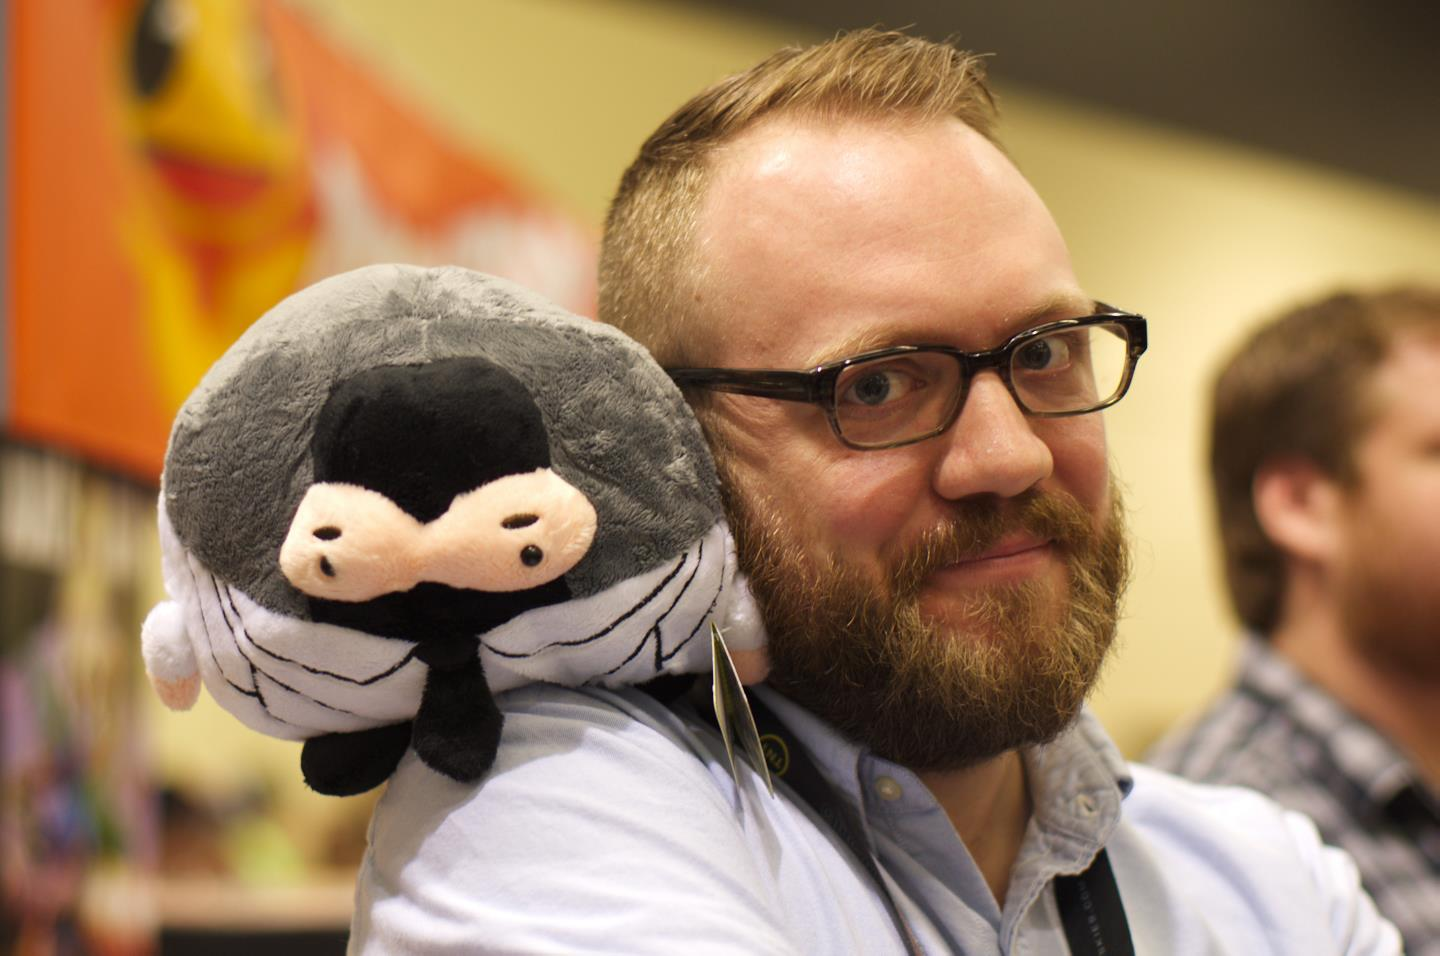 Christopher with Squishable Dr. McNinja. Photo by Sarah Sharp for  Comic Rocket